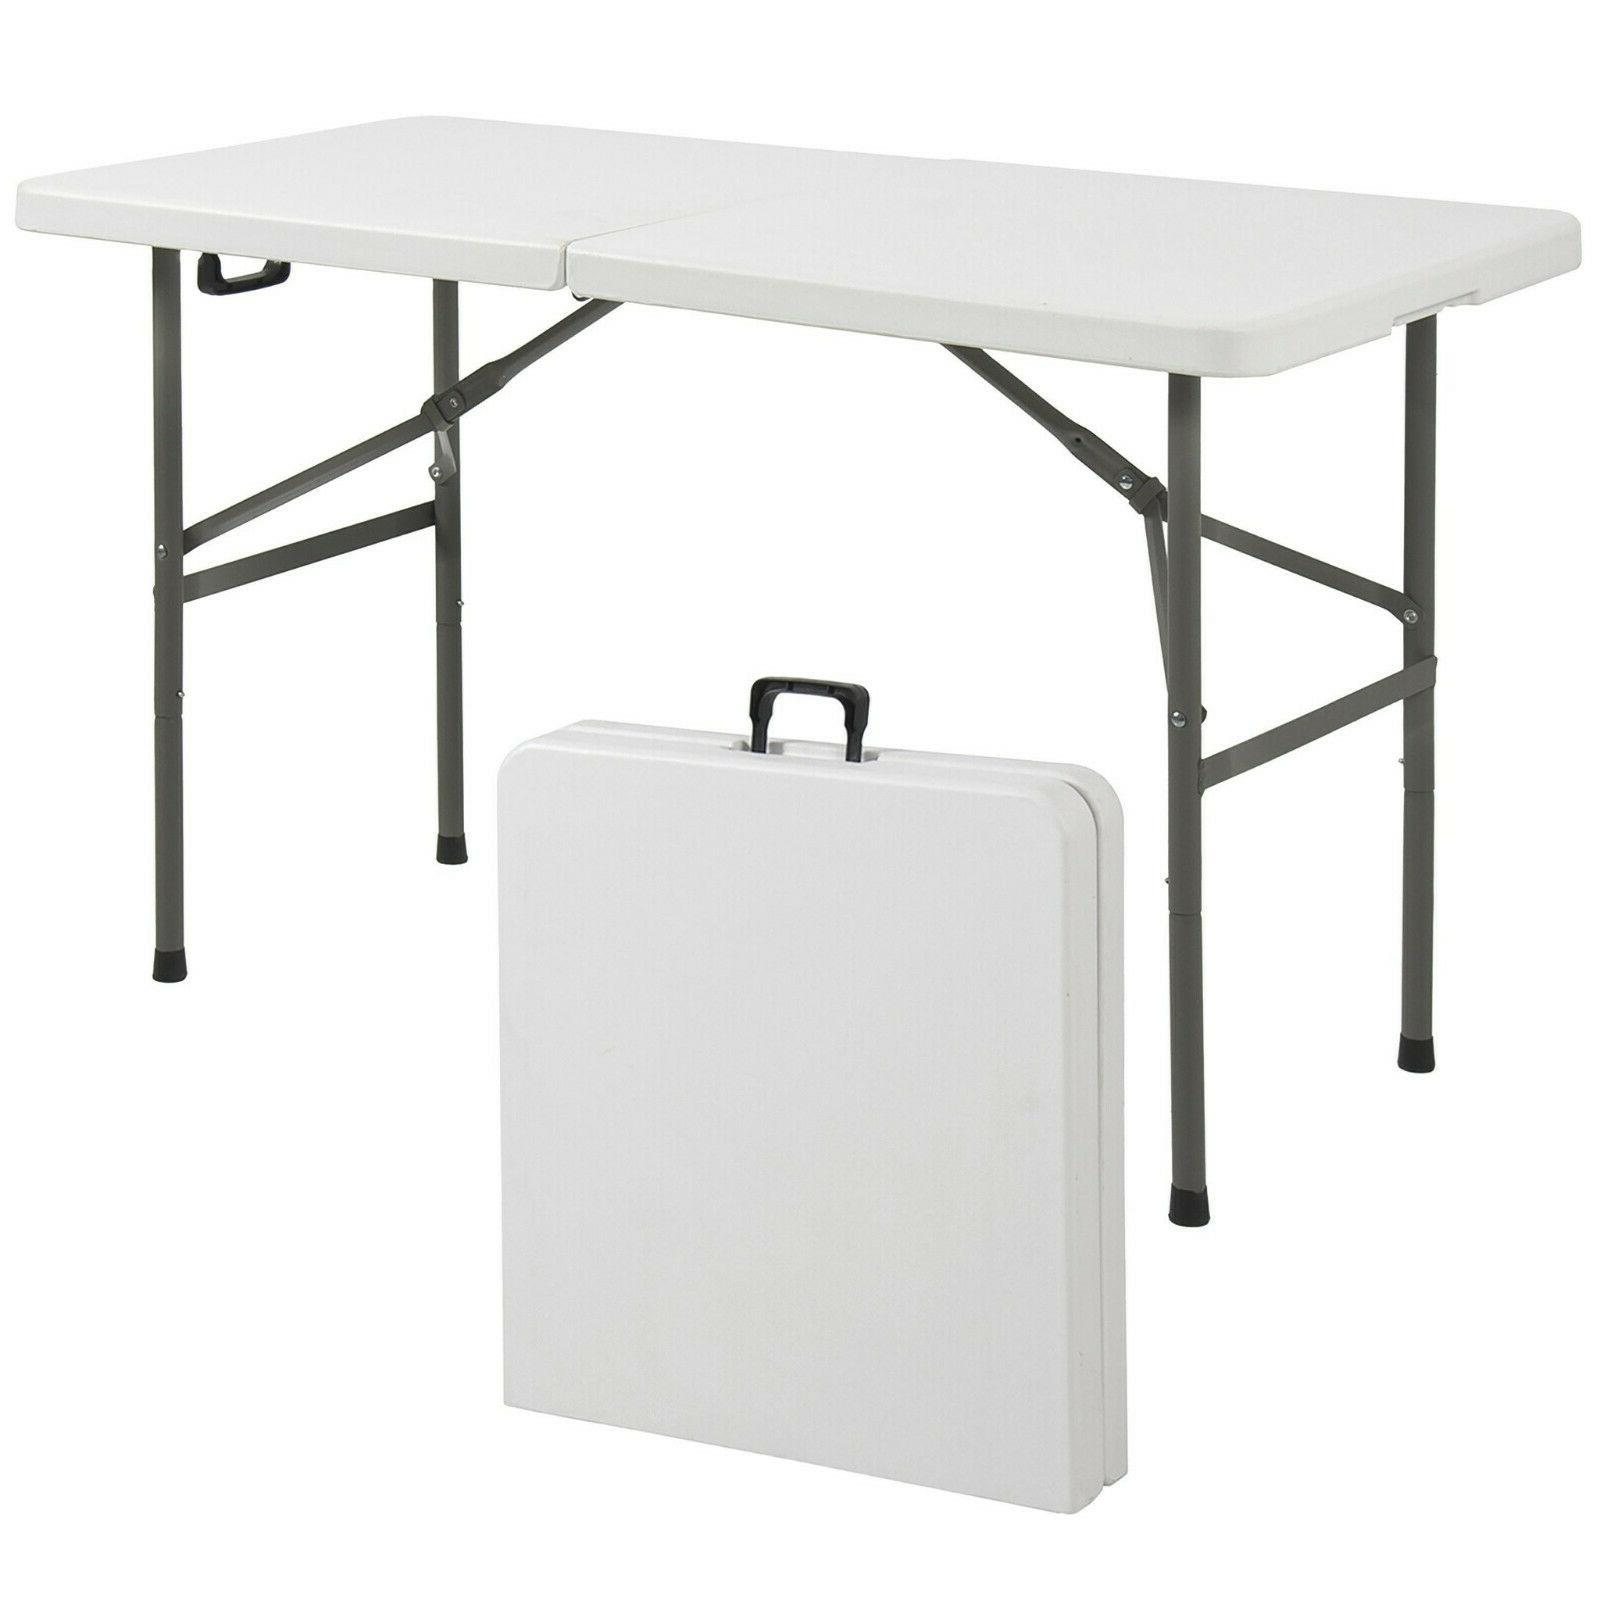 4ft plastic table folding picnic party outdoor